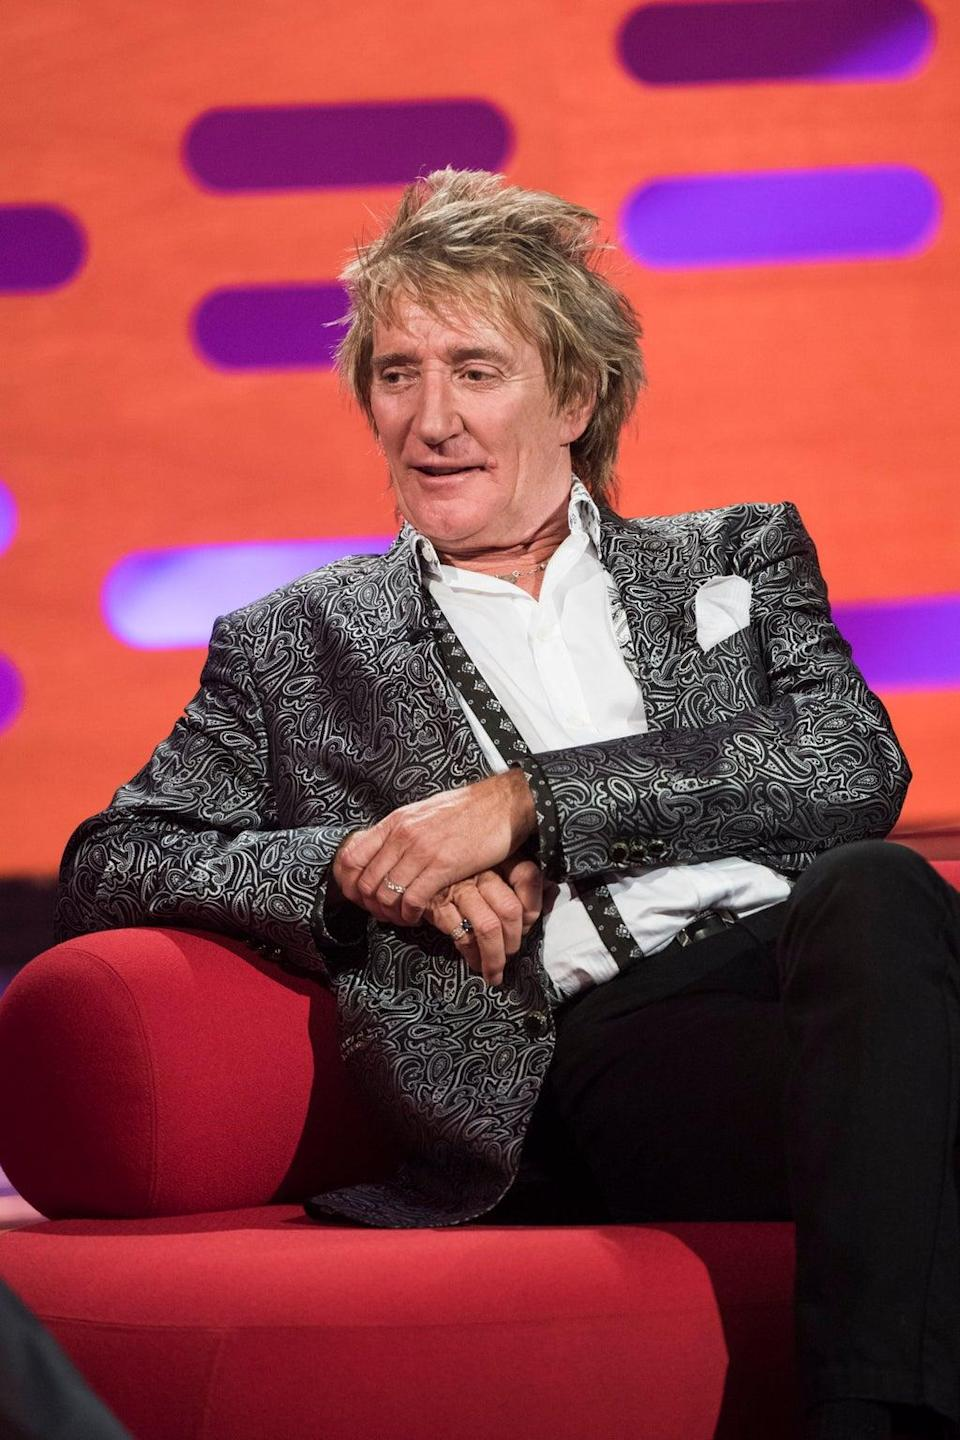 Sir Rod Stewart and his son denied a charge of simple battery following an incident in Florida in 2019 (Matt Crossick/PA) (PA Archive)